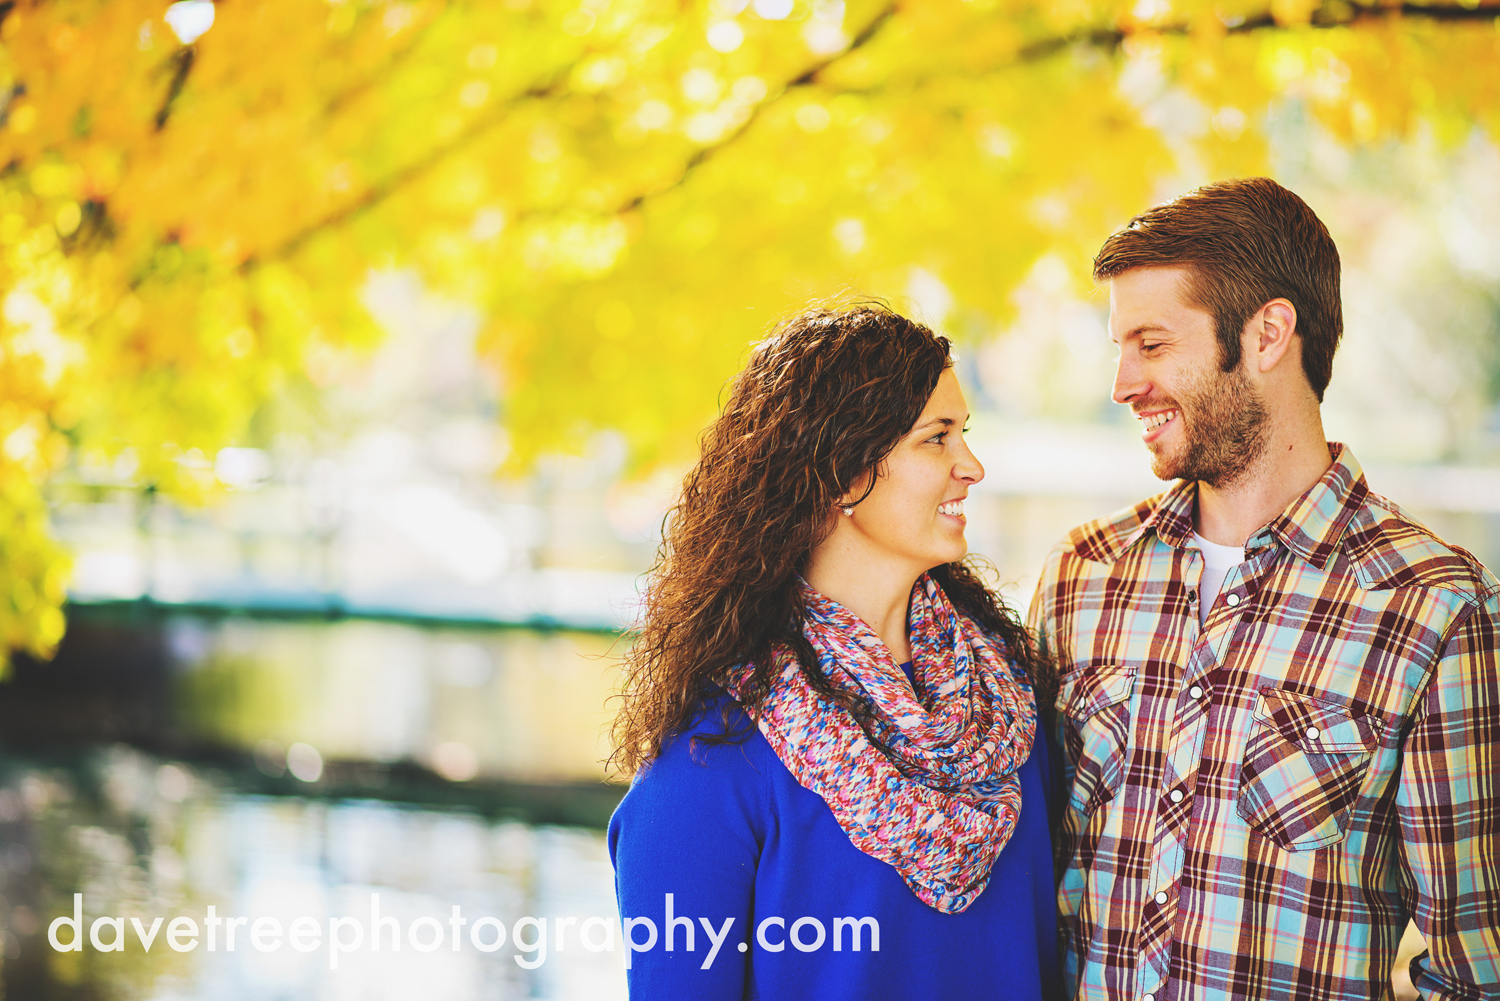 quincy_engagement_photographer_coldwater_engagement_photographer_40.jpg